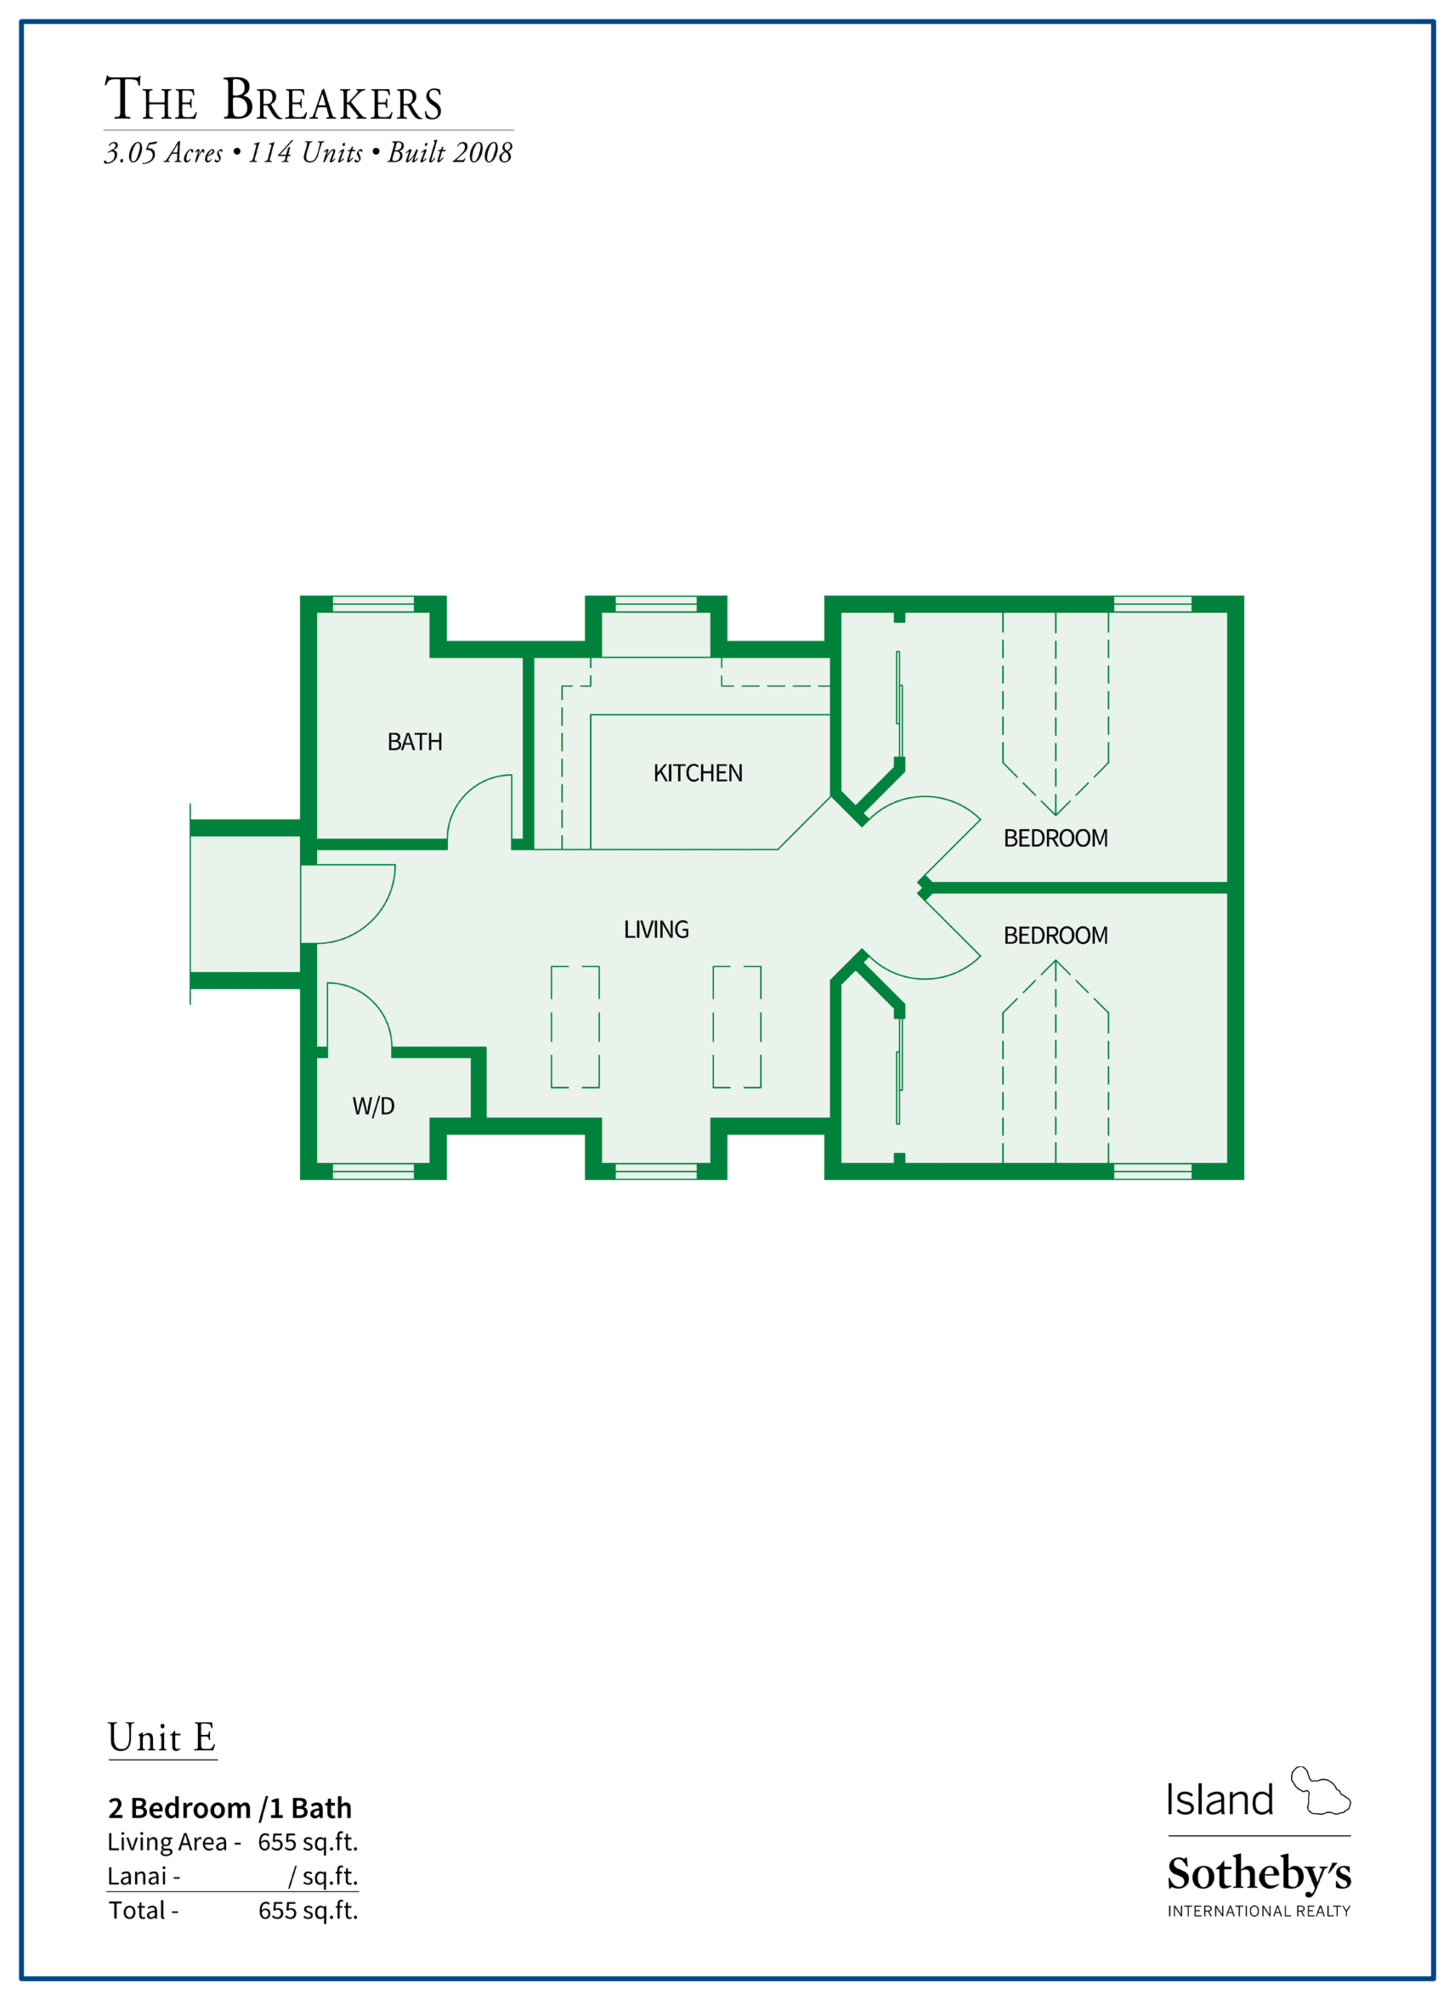 The Breakers Maui Floor Plan E